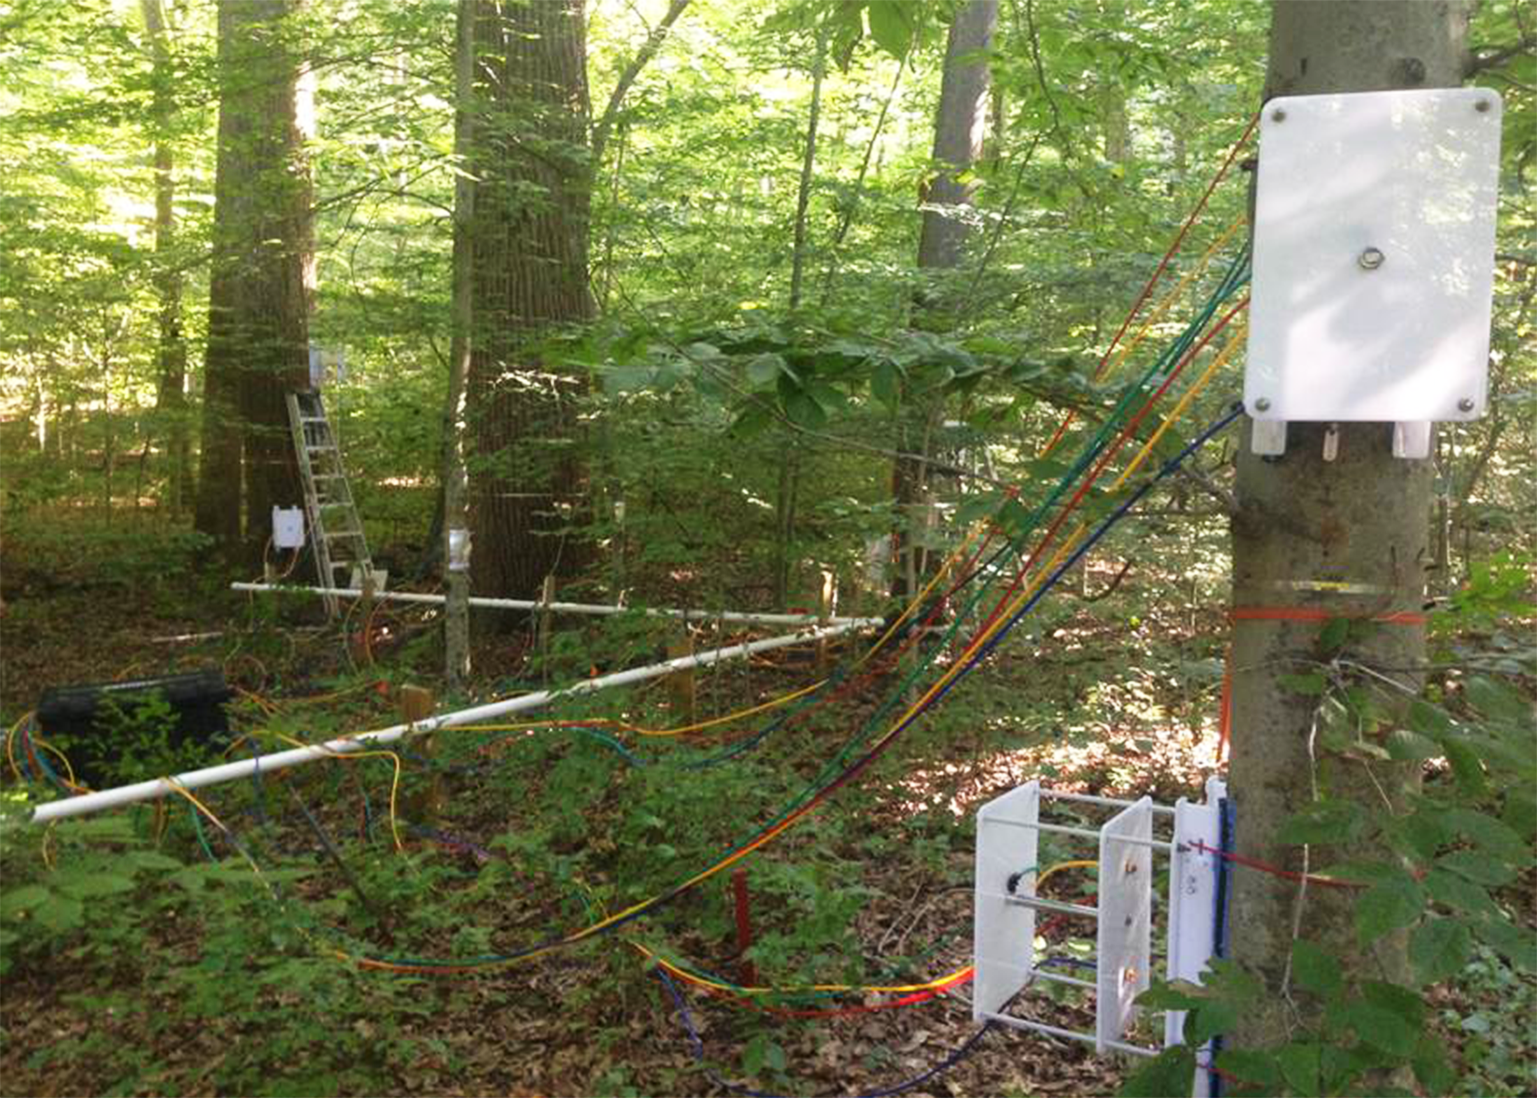 White chambers attached to tree trunks. Multi-colored tubes run from the chambers to a black box in the undergrowth.